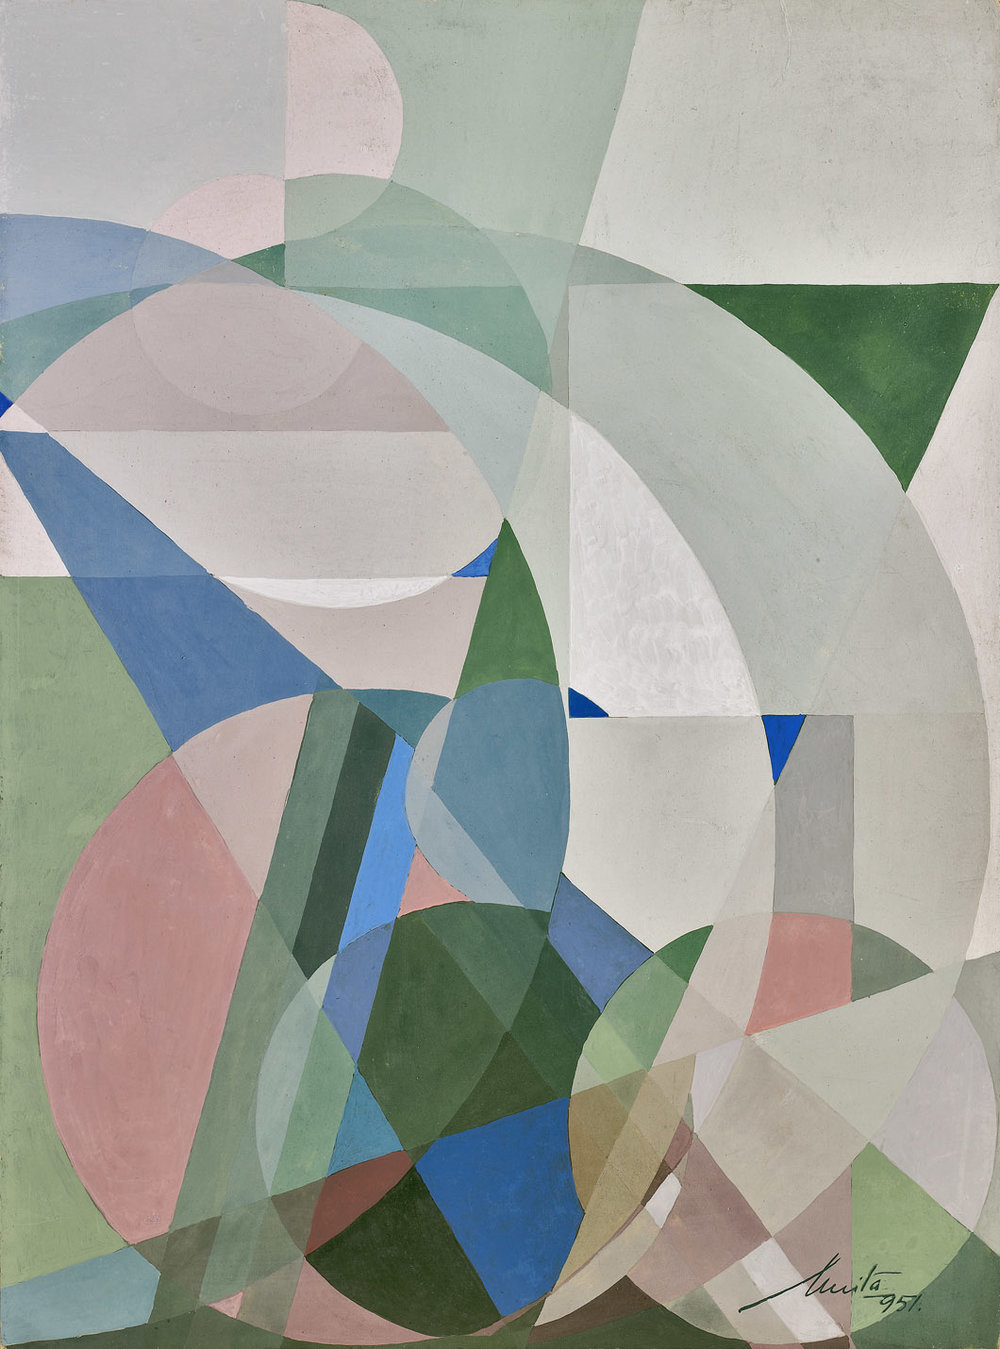 Anita Payró  (1897-1980)  Untitled Abstract Composition , 1951 oil and tempera on board 14 1/2 x 10 3/4 inches 36.8 x 27.3 centimeters